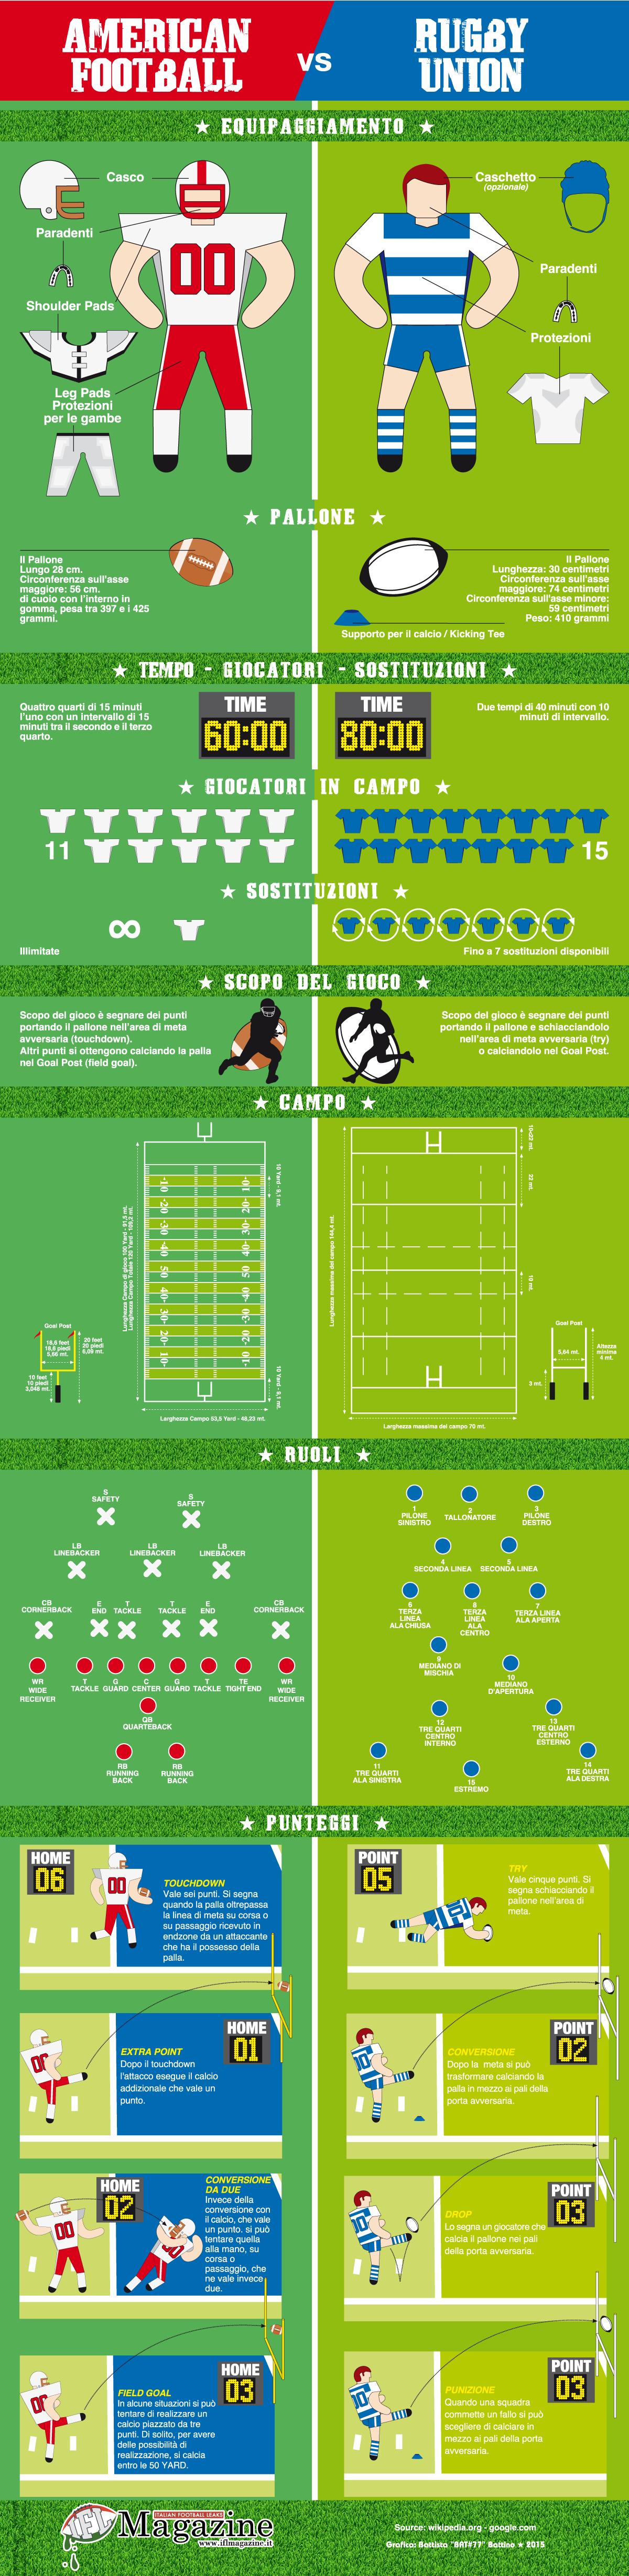 Infografica American Football Vs Rugby Union Ifl Magazine Football Americano Rugby Infografica